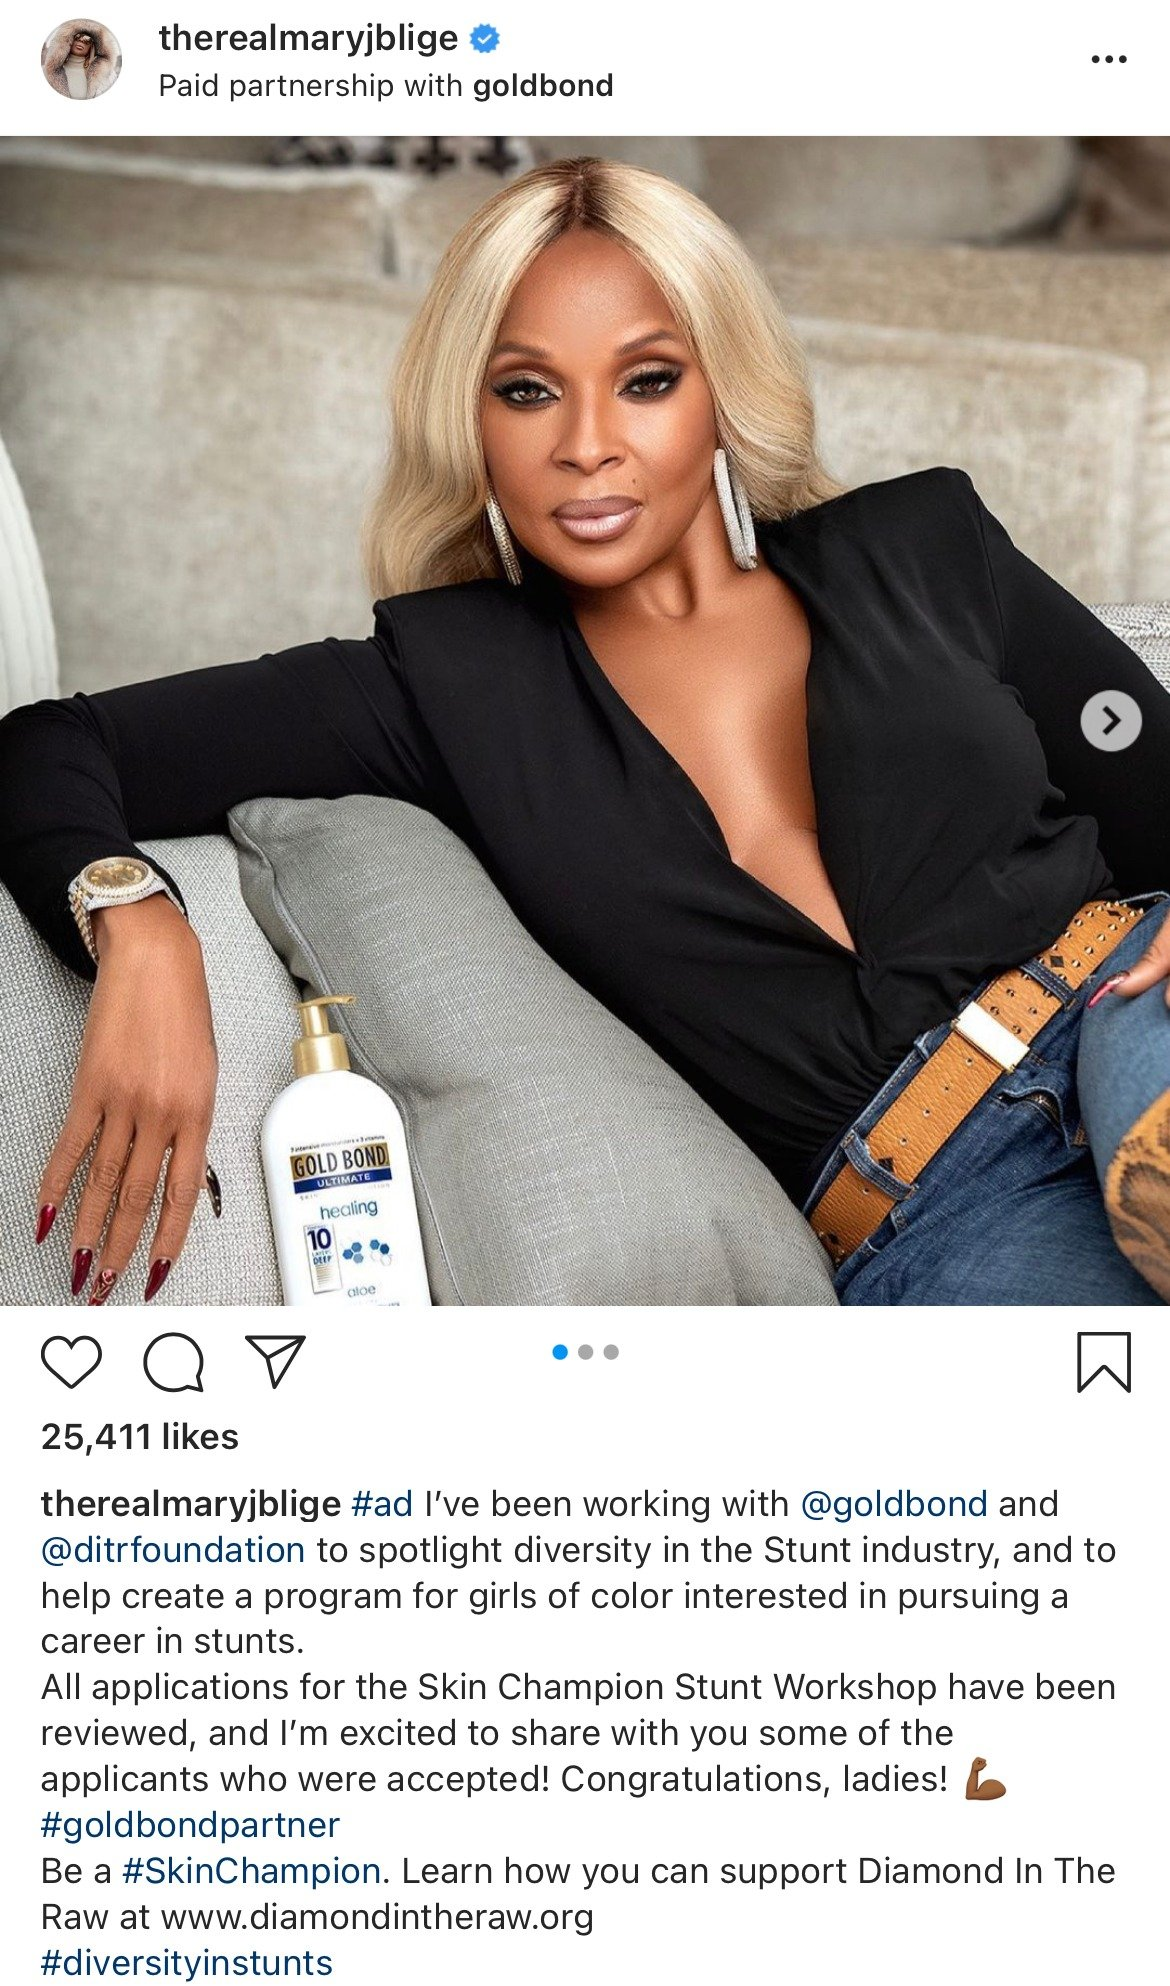 Mary J. Blige looking divine and youthful in her black top and eye-catching accessories. | Photo: instagram.com/therealmaryjblige